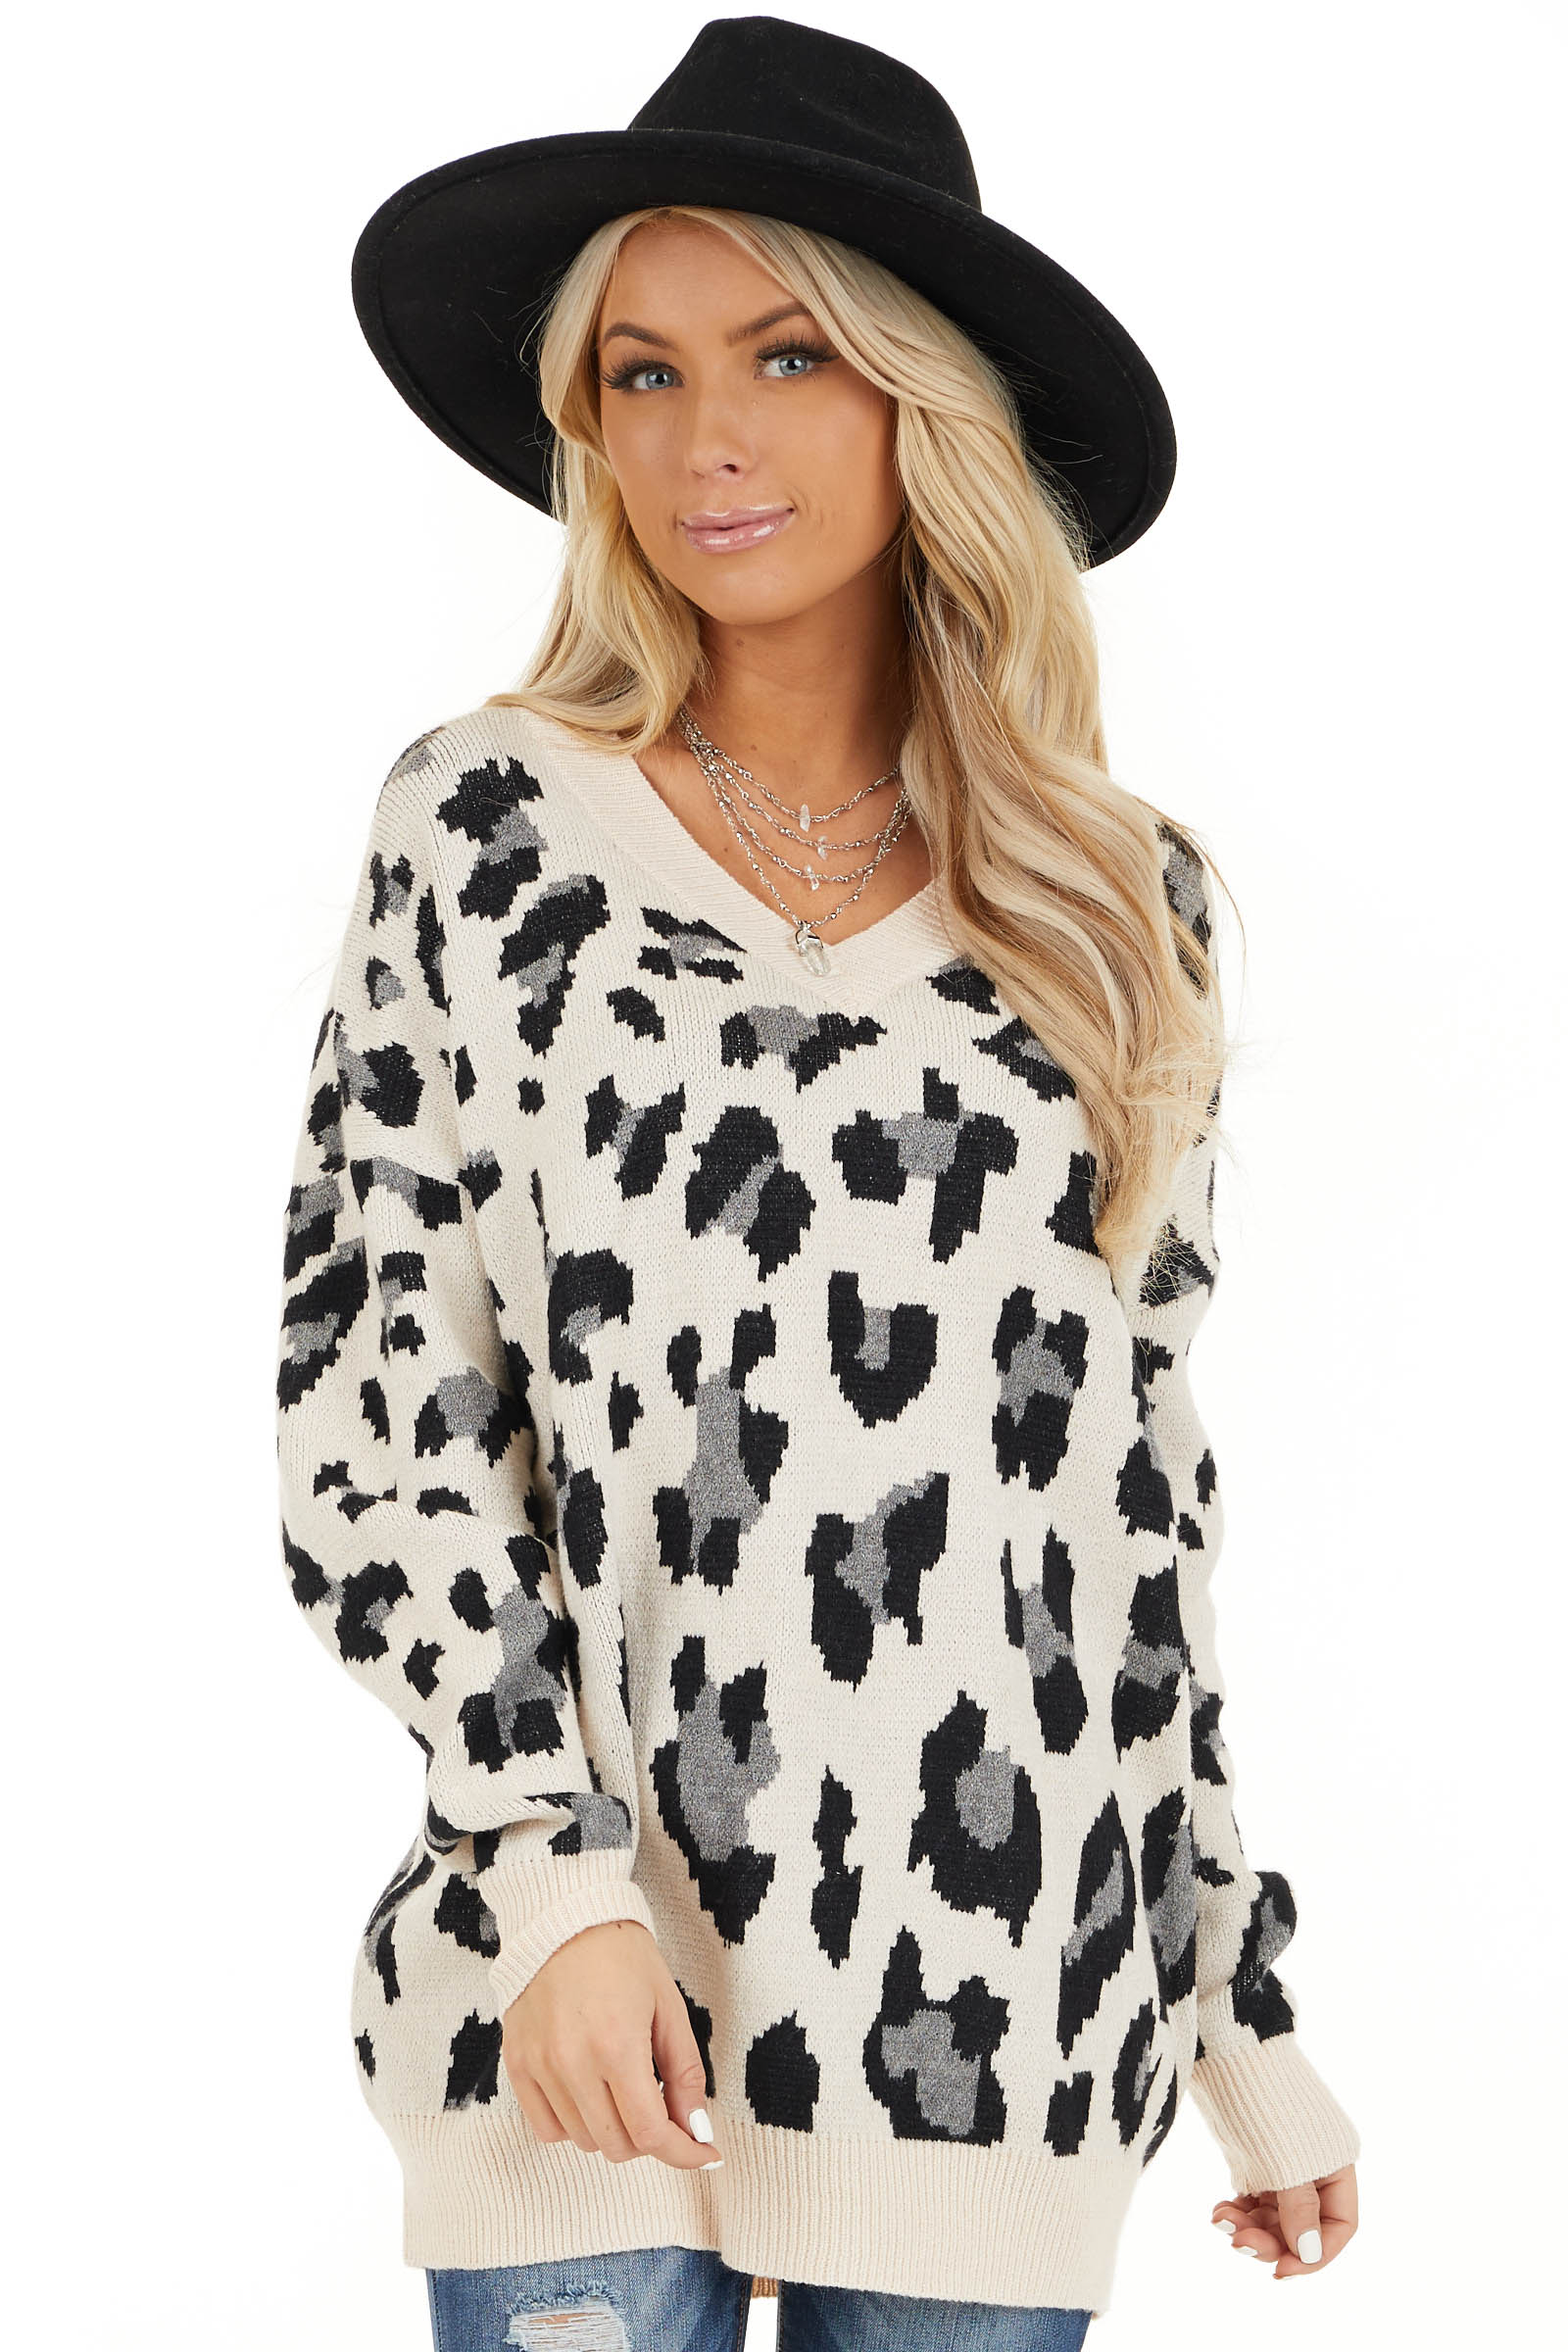 Champagne and Black Animal Print Sweater with V Neckline front close up